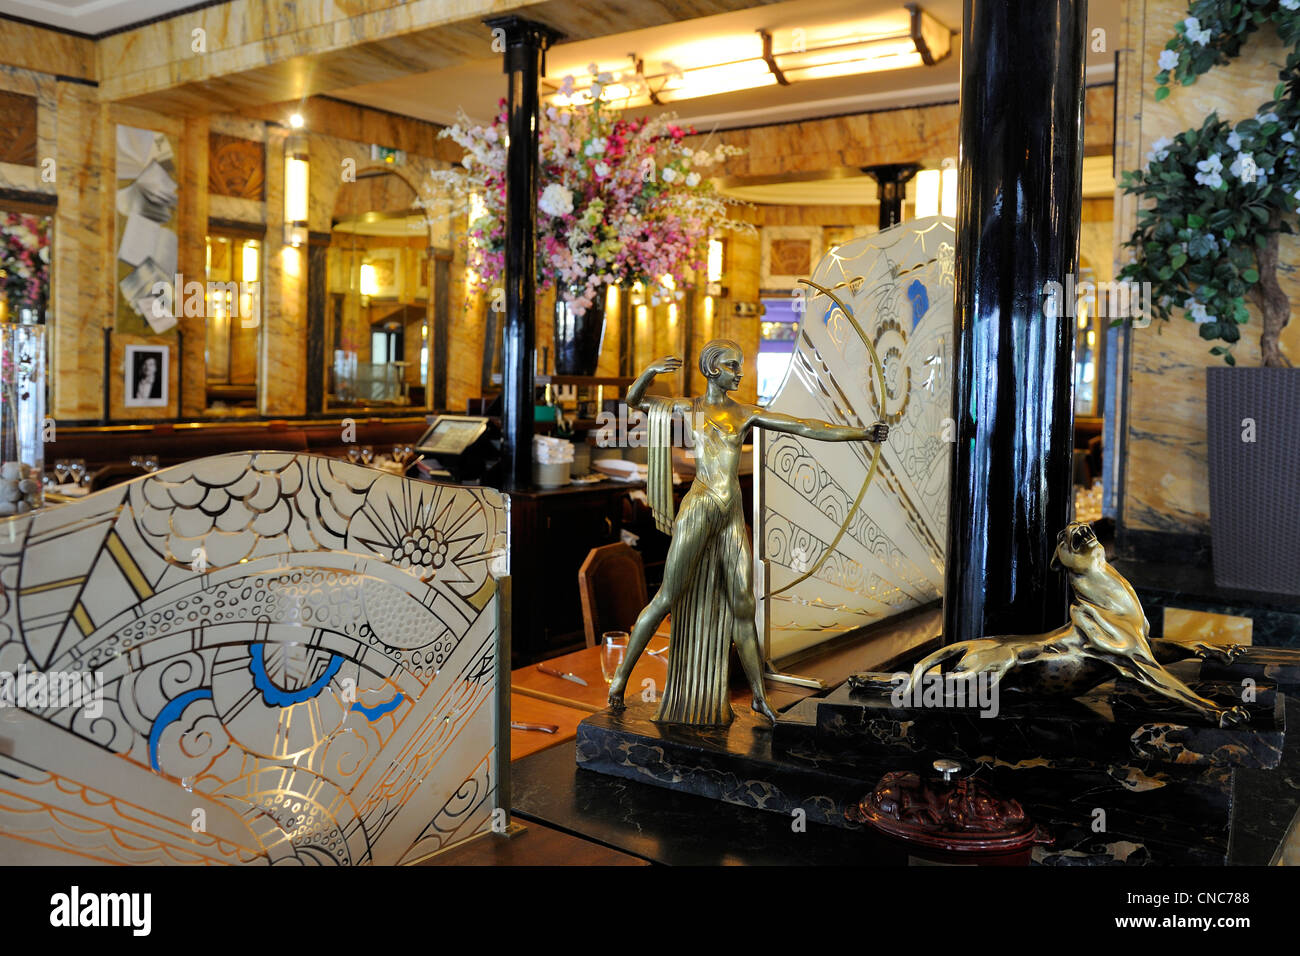 Arts Deco Paris Art Deco Paris Stock Photos Art Deco Paris Stock Images Alamy